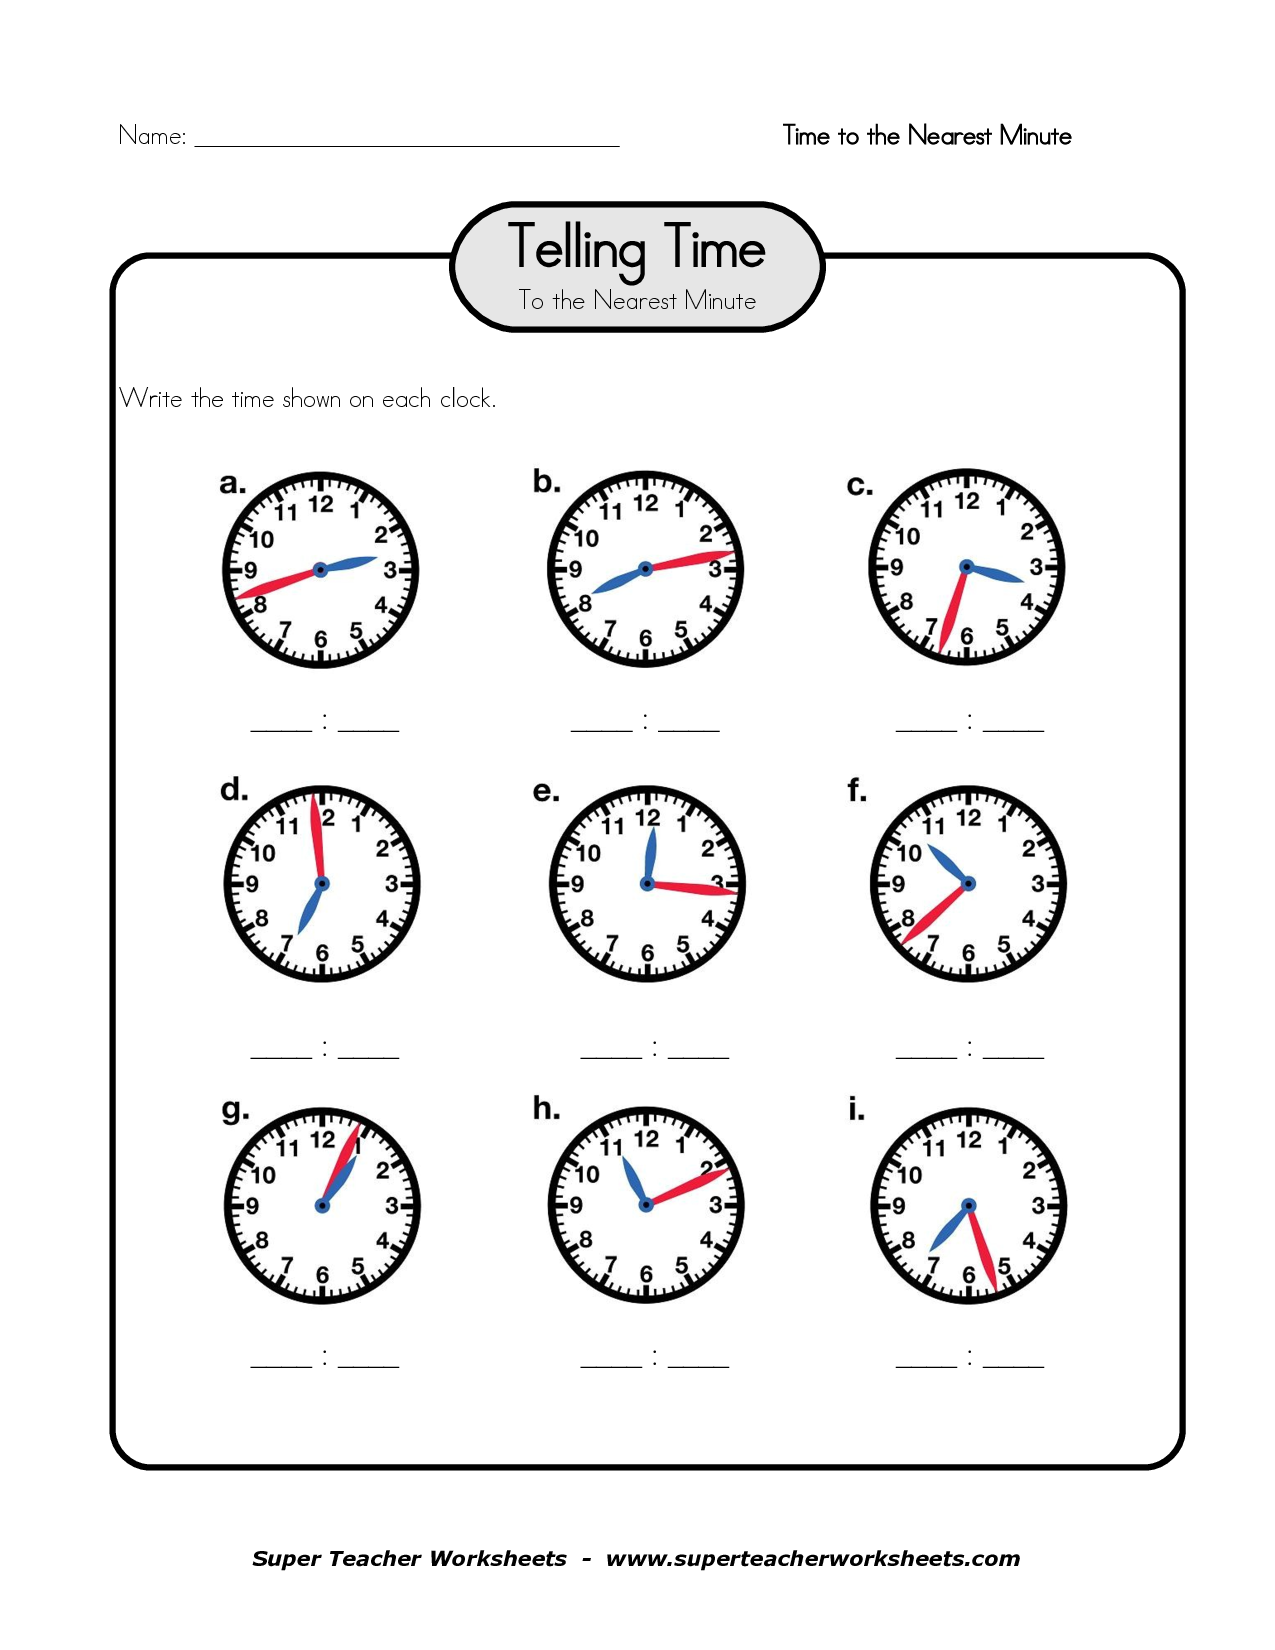 Printable Worksheets for Telling Time - PDF   Time worksheets [ 1650 x 1275 Pixel ]